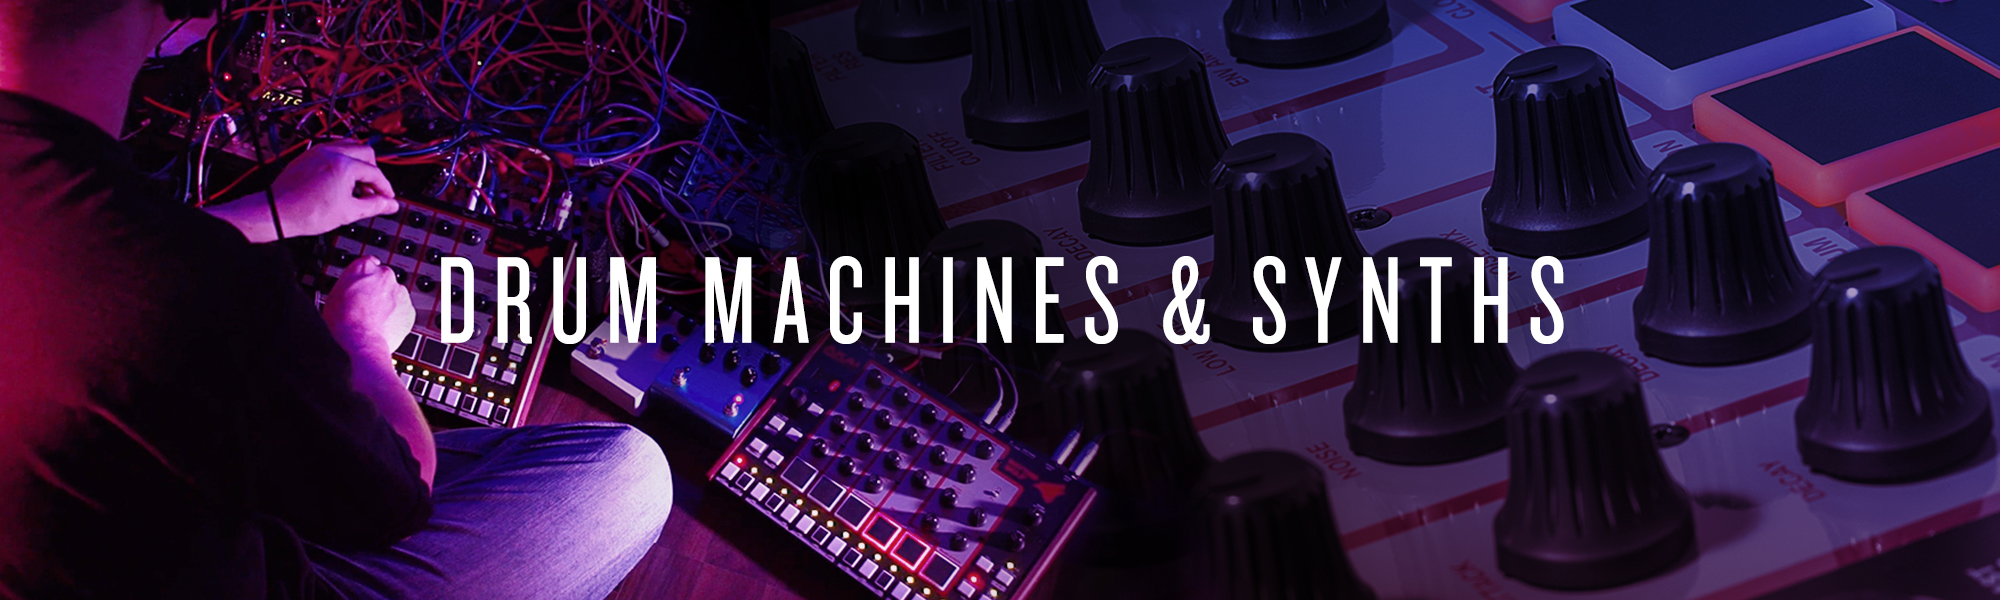 Drum Machines & Synths